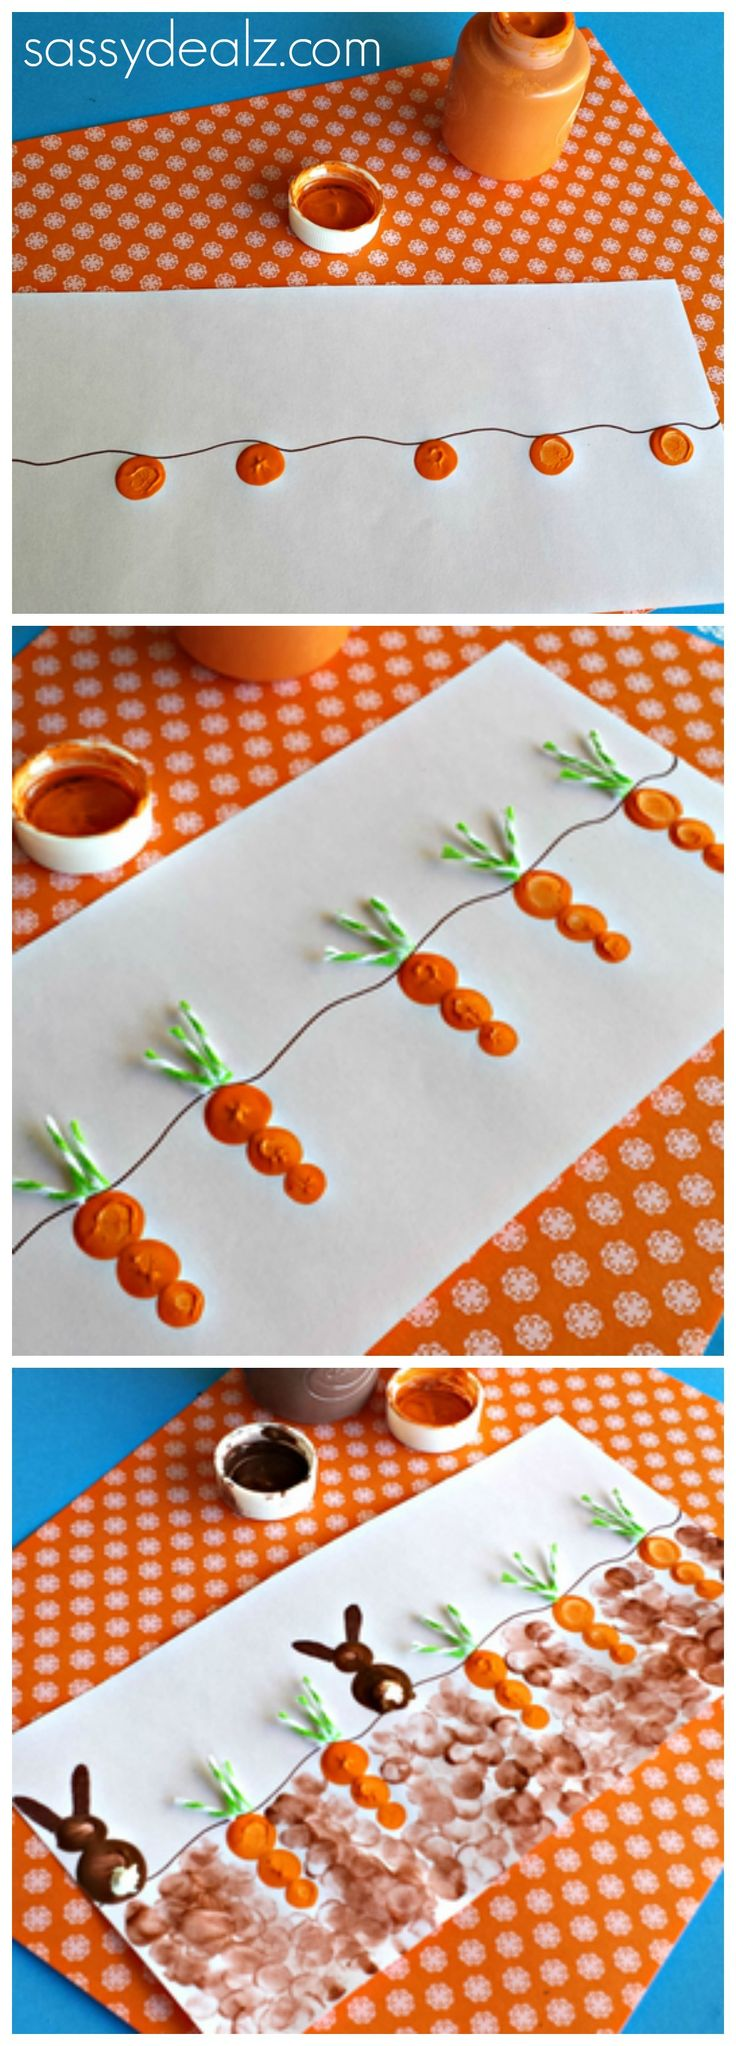 Fingerprint Carrot and Bunny Craft for Kids at Easter time! So cute! #toddler approved  | http://www.sassydealz.com/2014/03/fingerprint-carrot-bunny-craft-kids.html